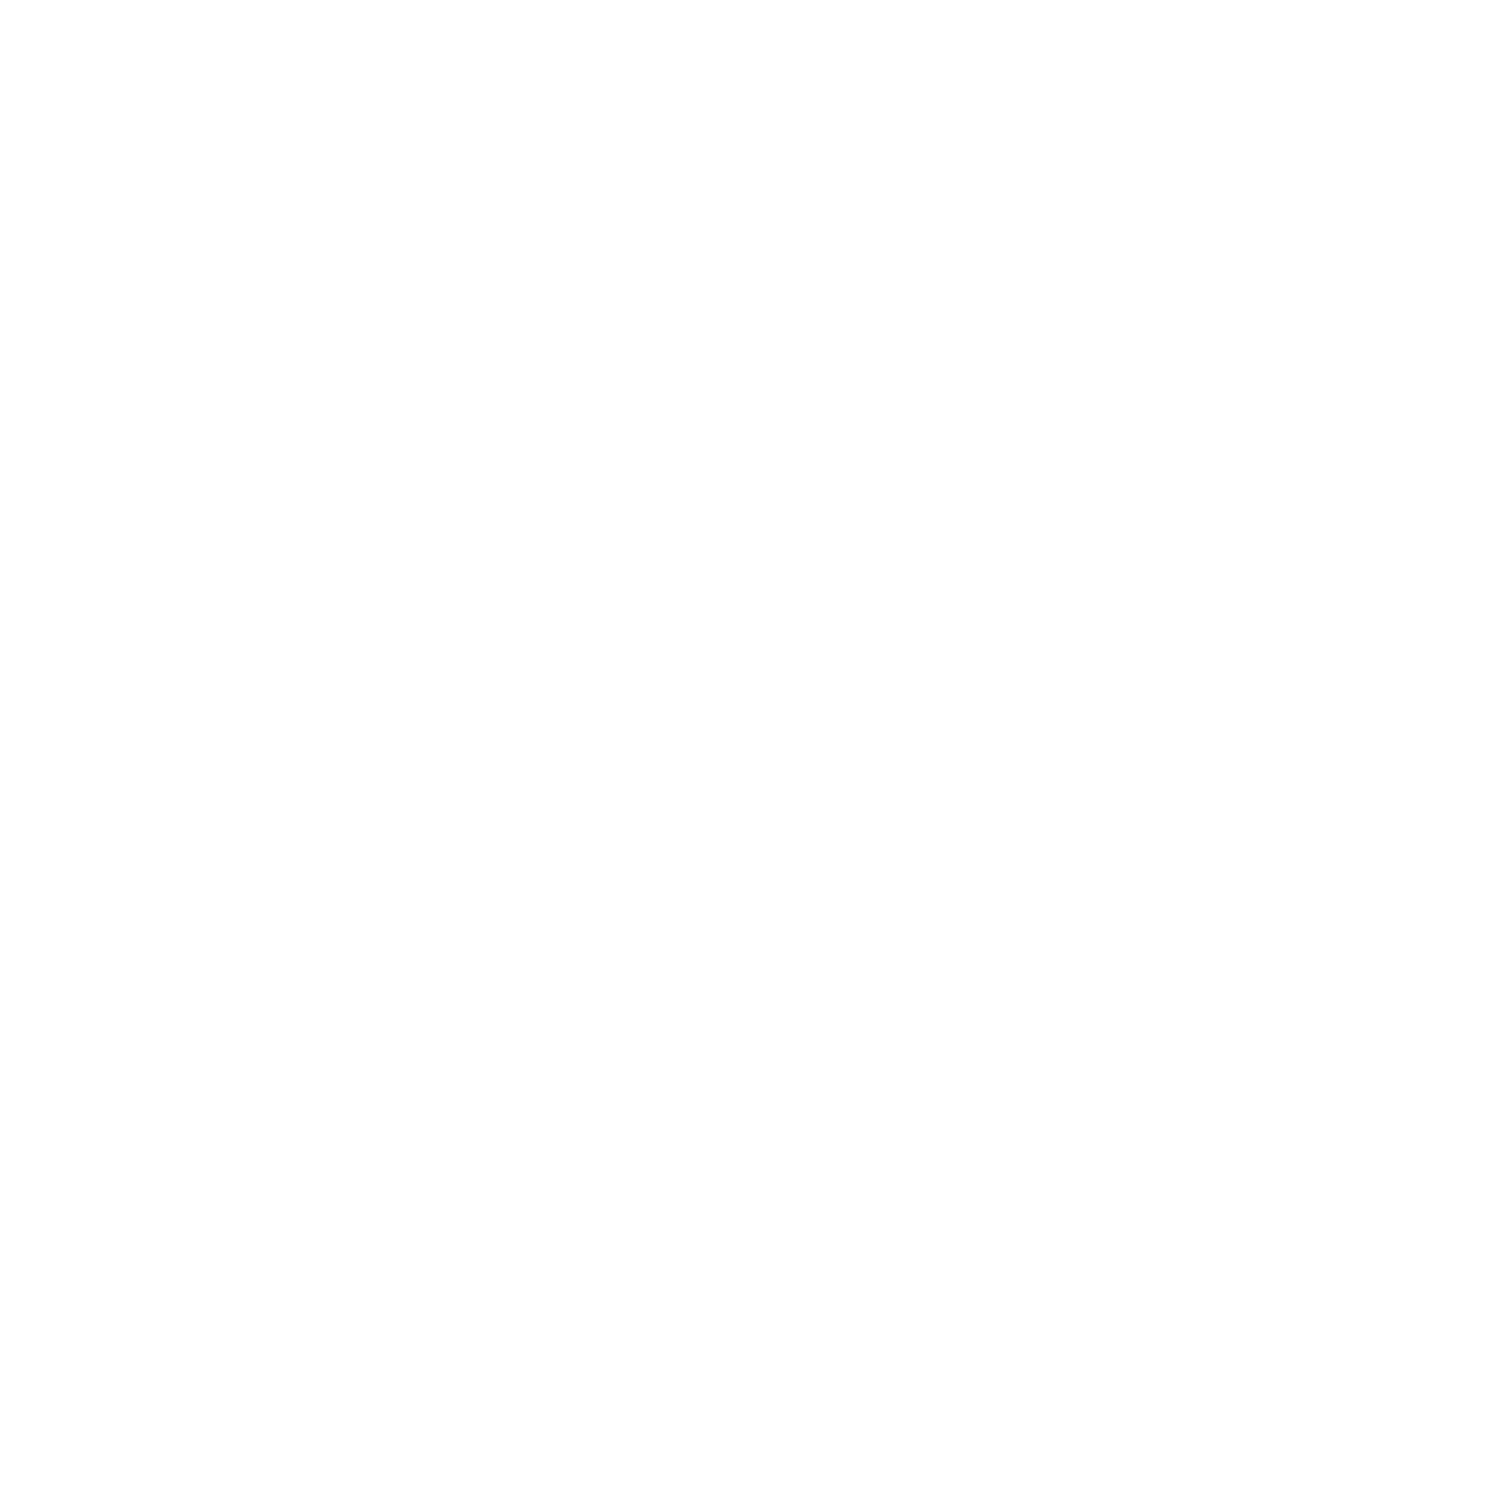 Hope Church Eastern Queens: Bayside, NY